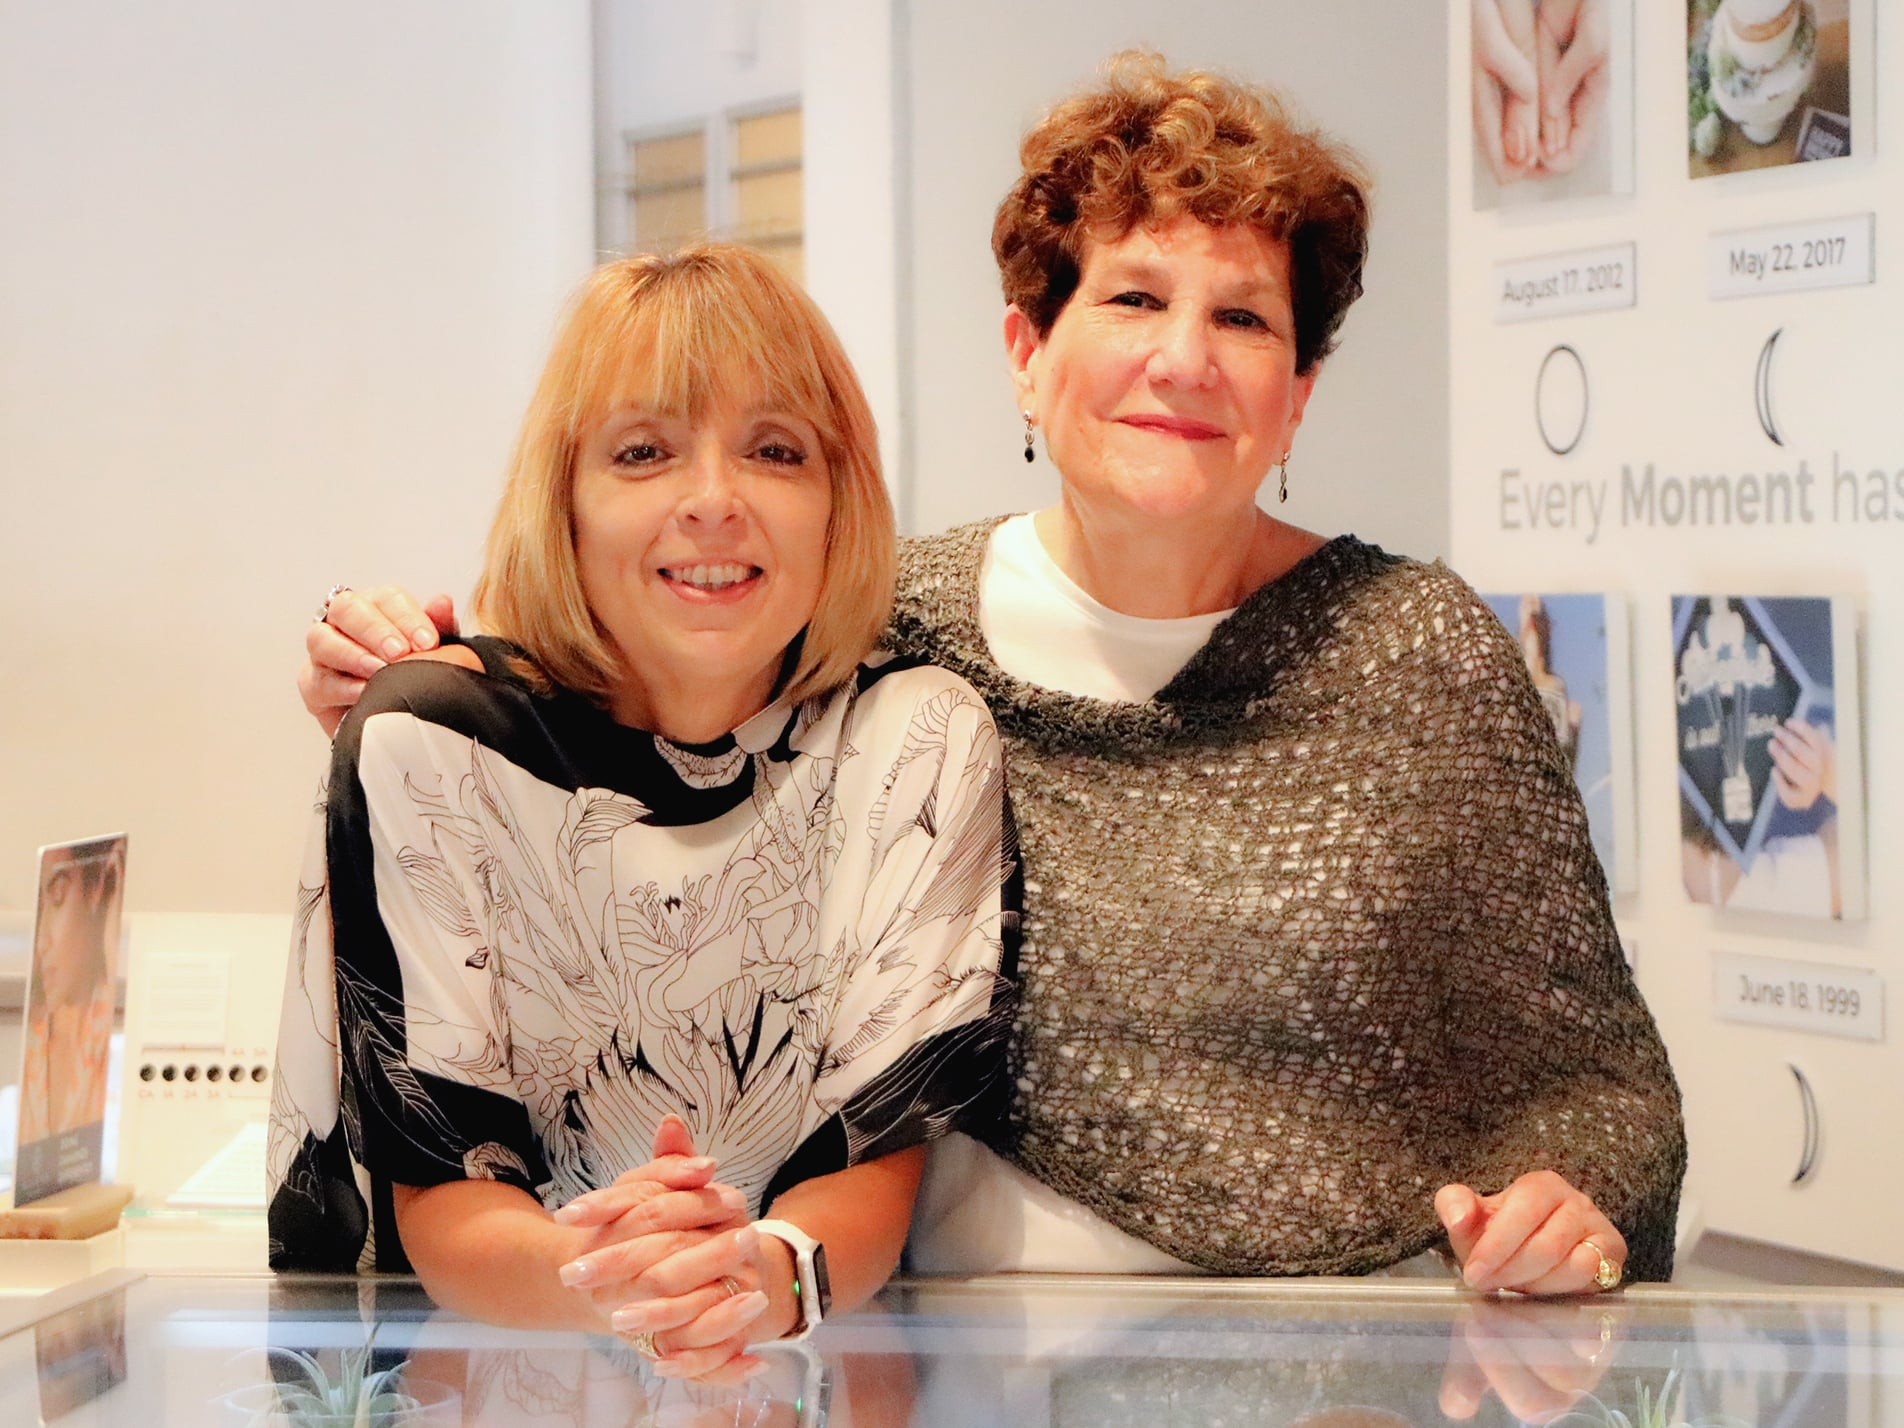 Willy Nilly Trading Company co-owners Lynn Brey and Marilyn Schulman